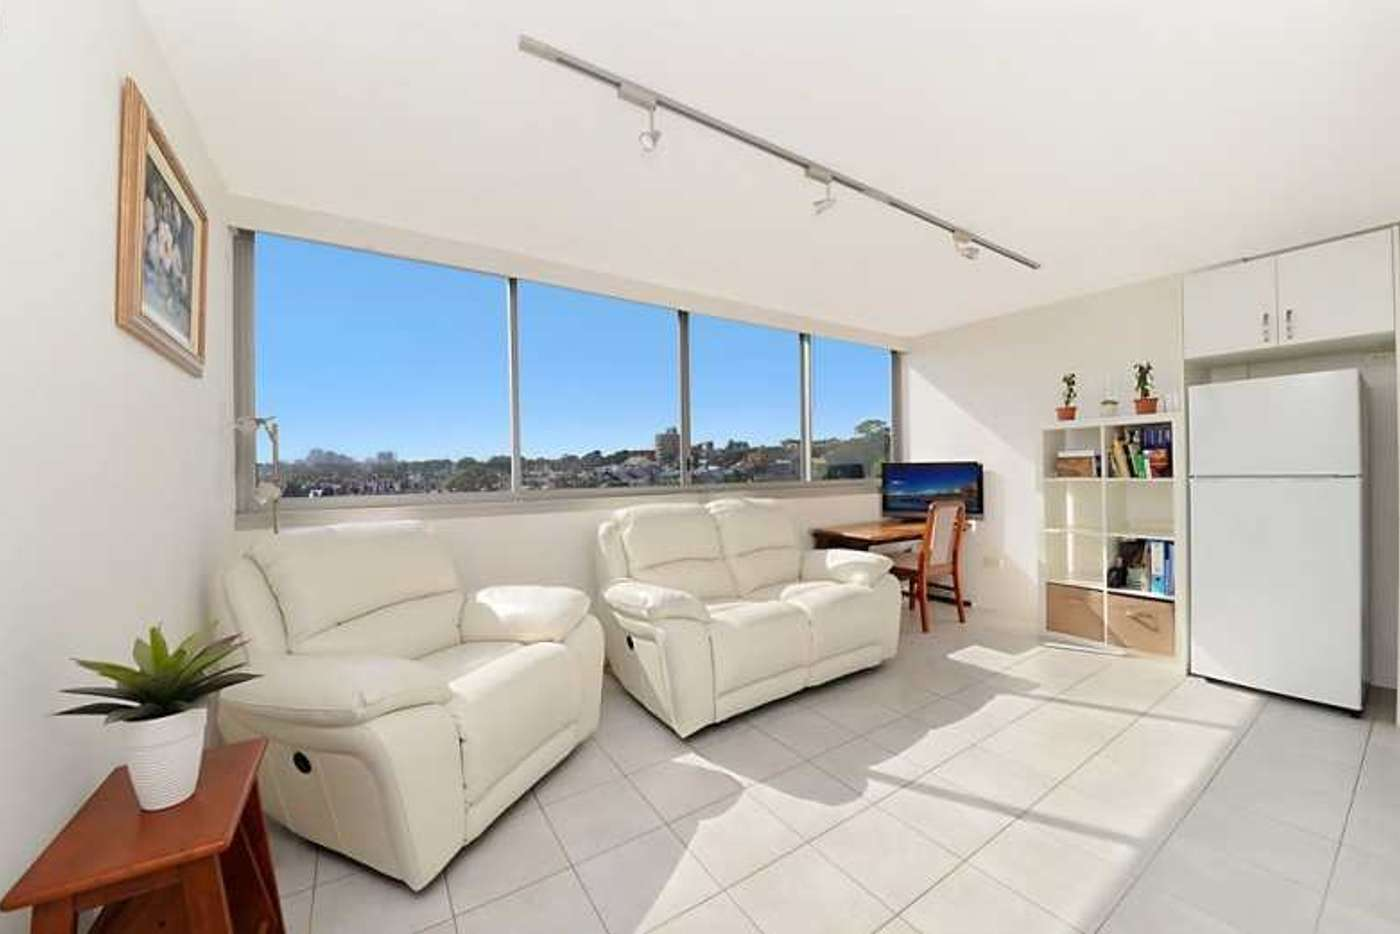 Main view of Homely apartment listing, 176 Glenmore Road, Paddington NSW 2021